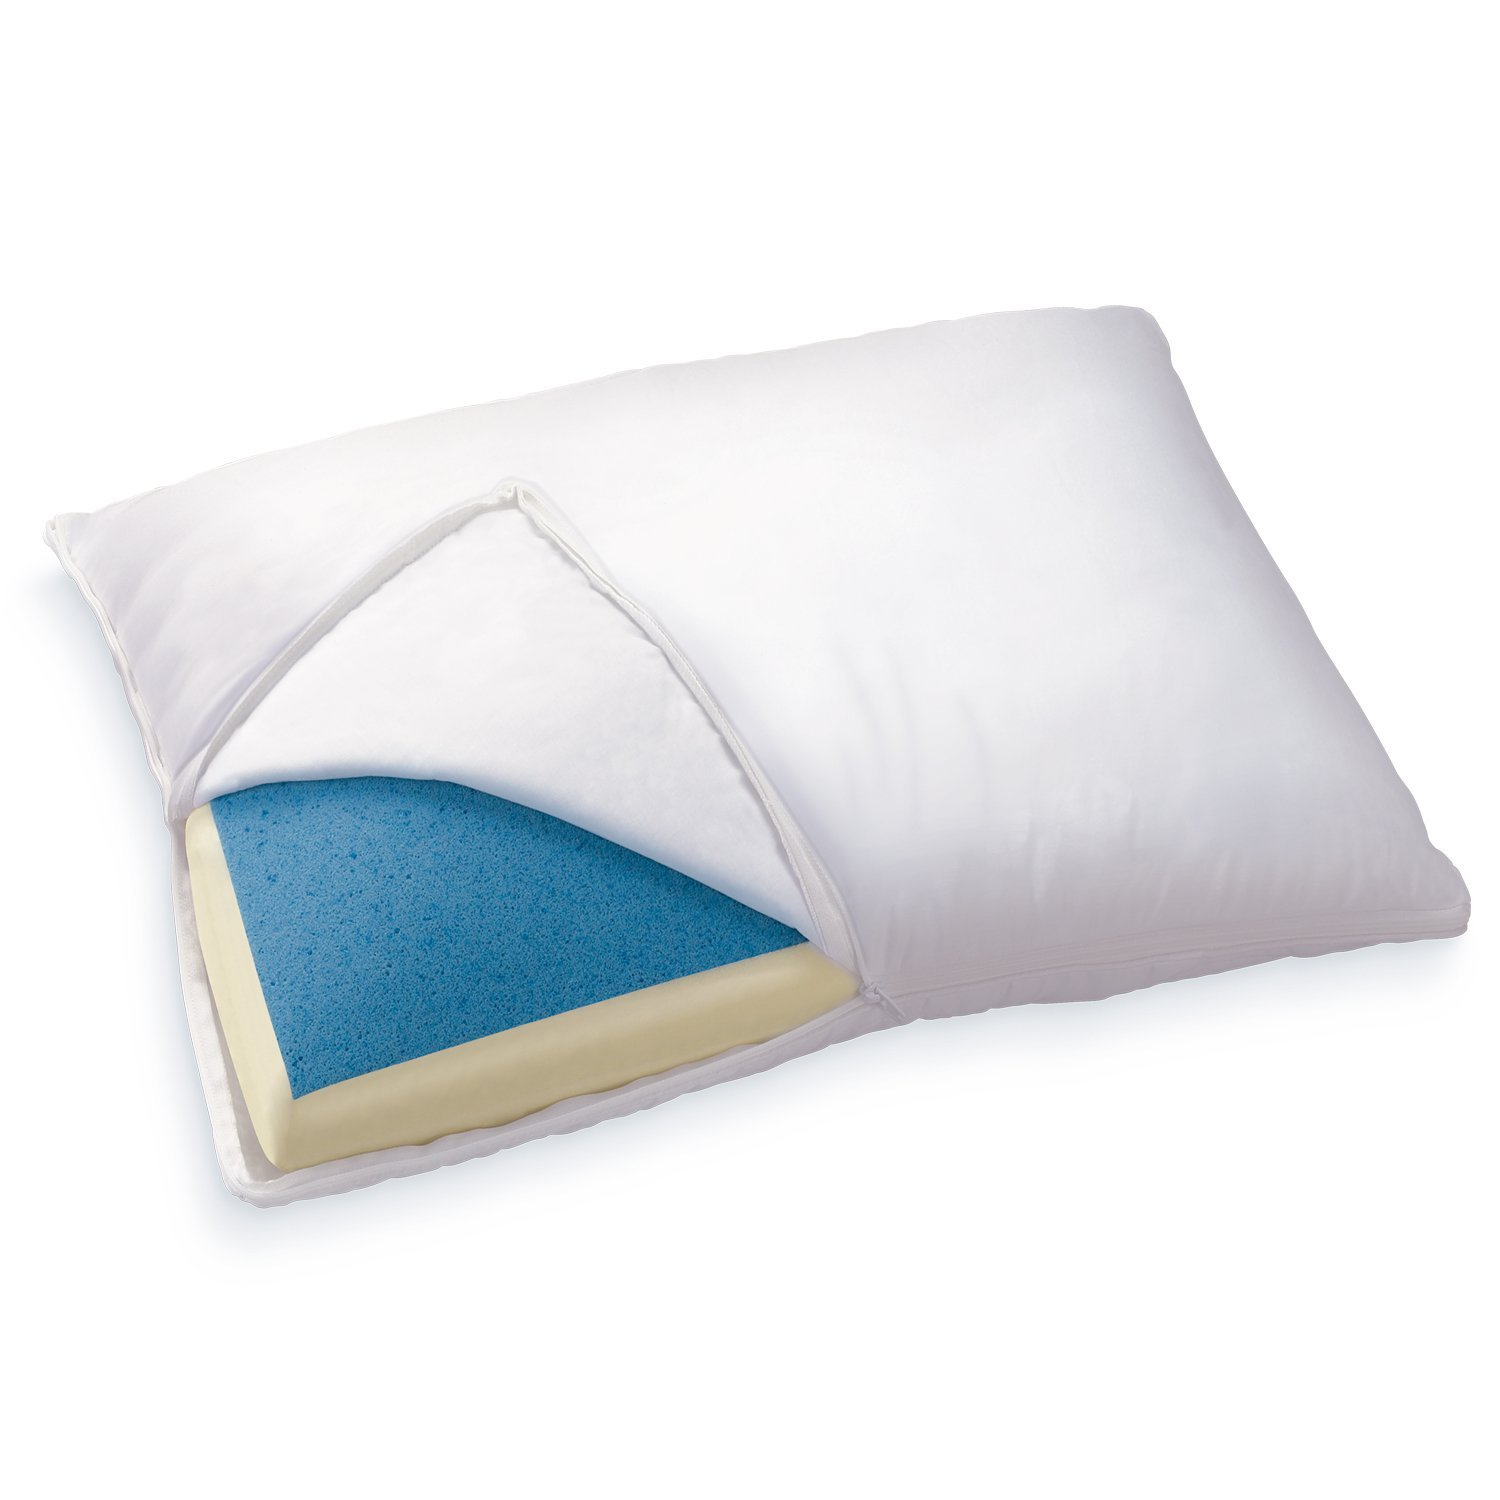 10 Best Cooling Pillow Reviews [Sleep fortably in 2017]